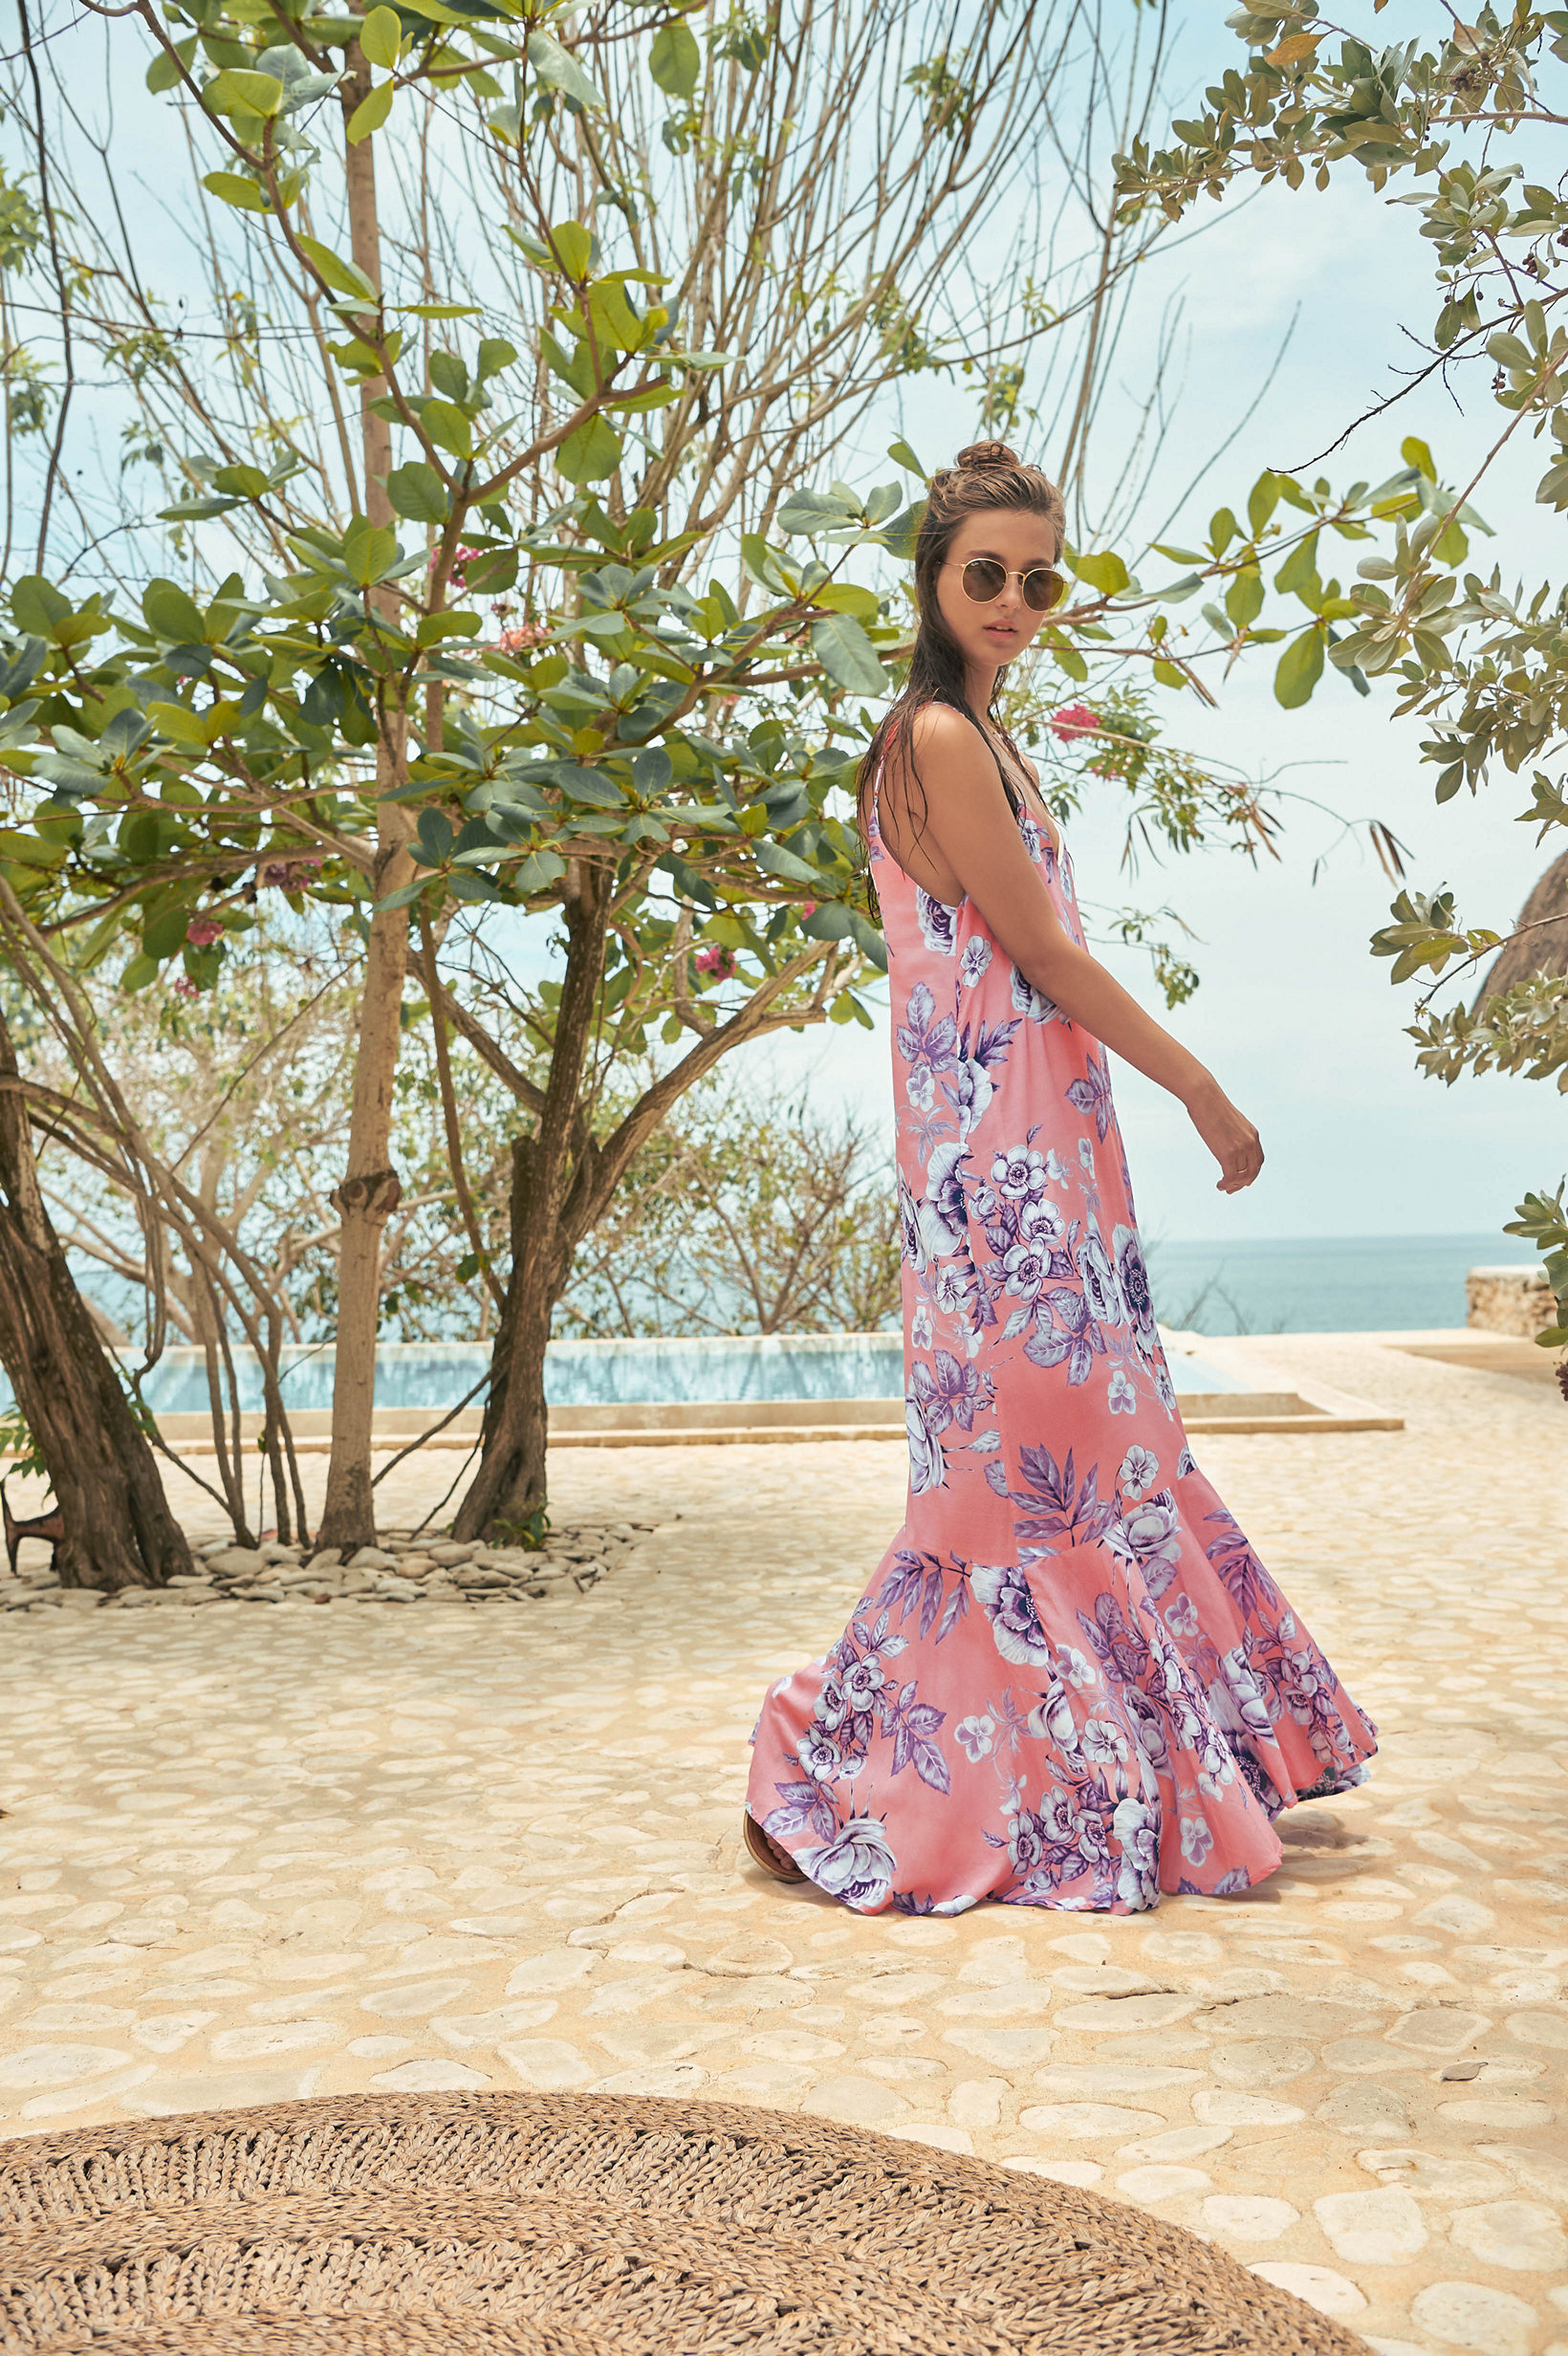 2019 Malai Swimwear at Butterflies and Bikinis featuring the Blossom Lilas Ruffino Maxi Dress Cover Up